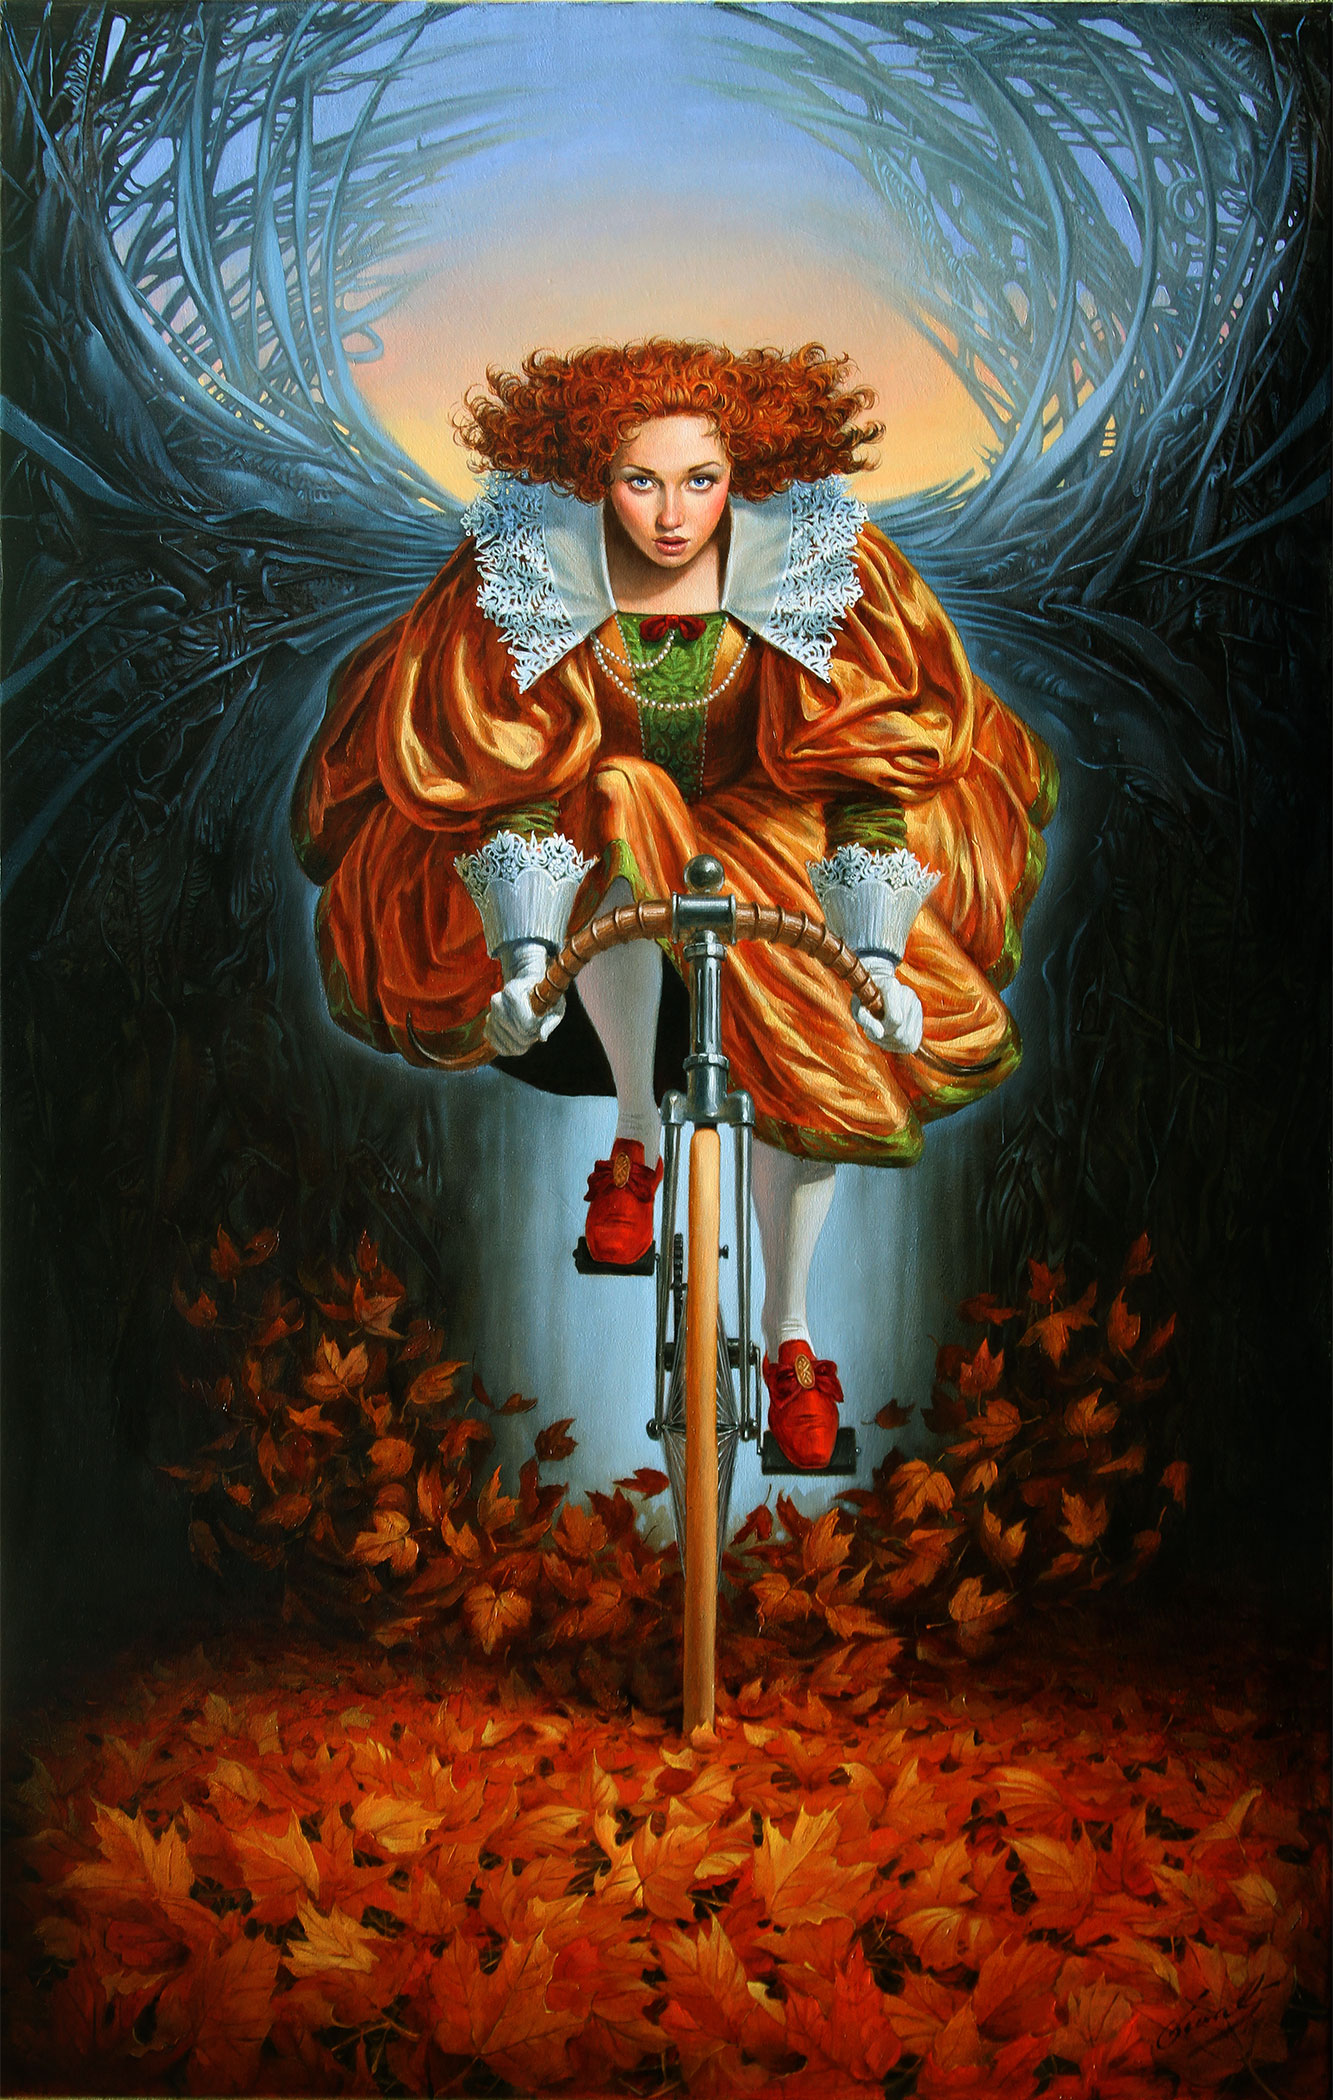 Michael Cheval - ON THE WINGS OF FALL - Oil on Canvas